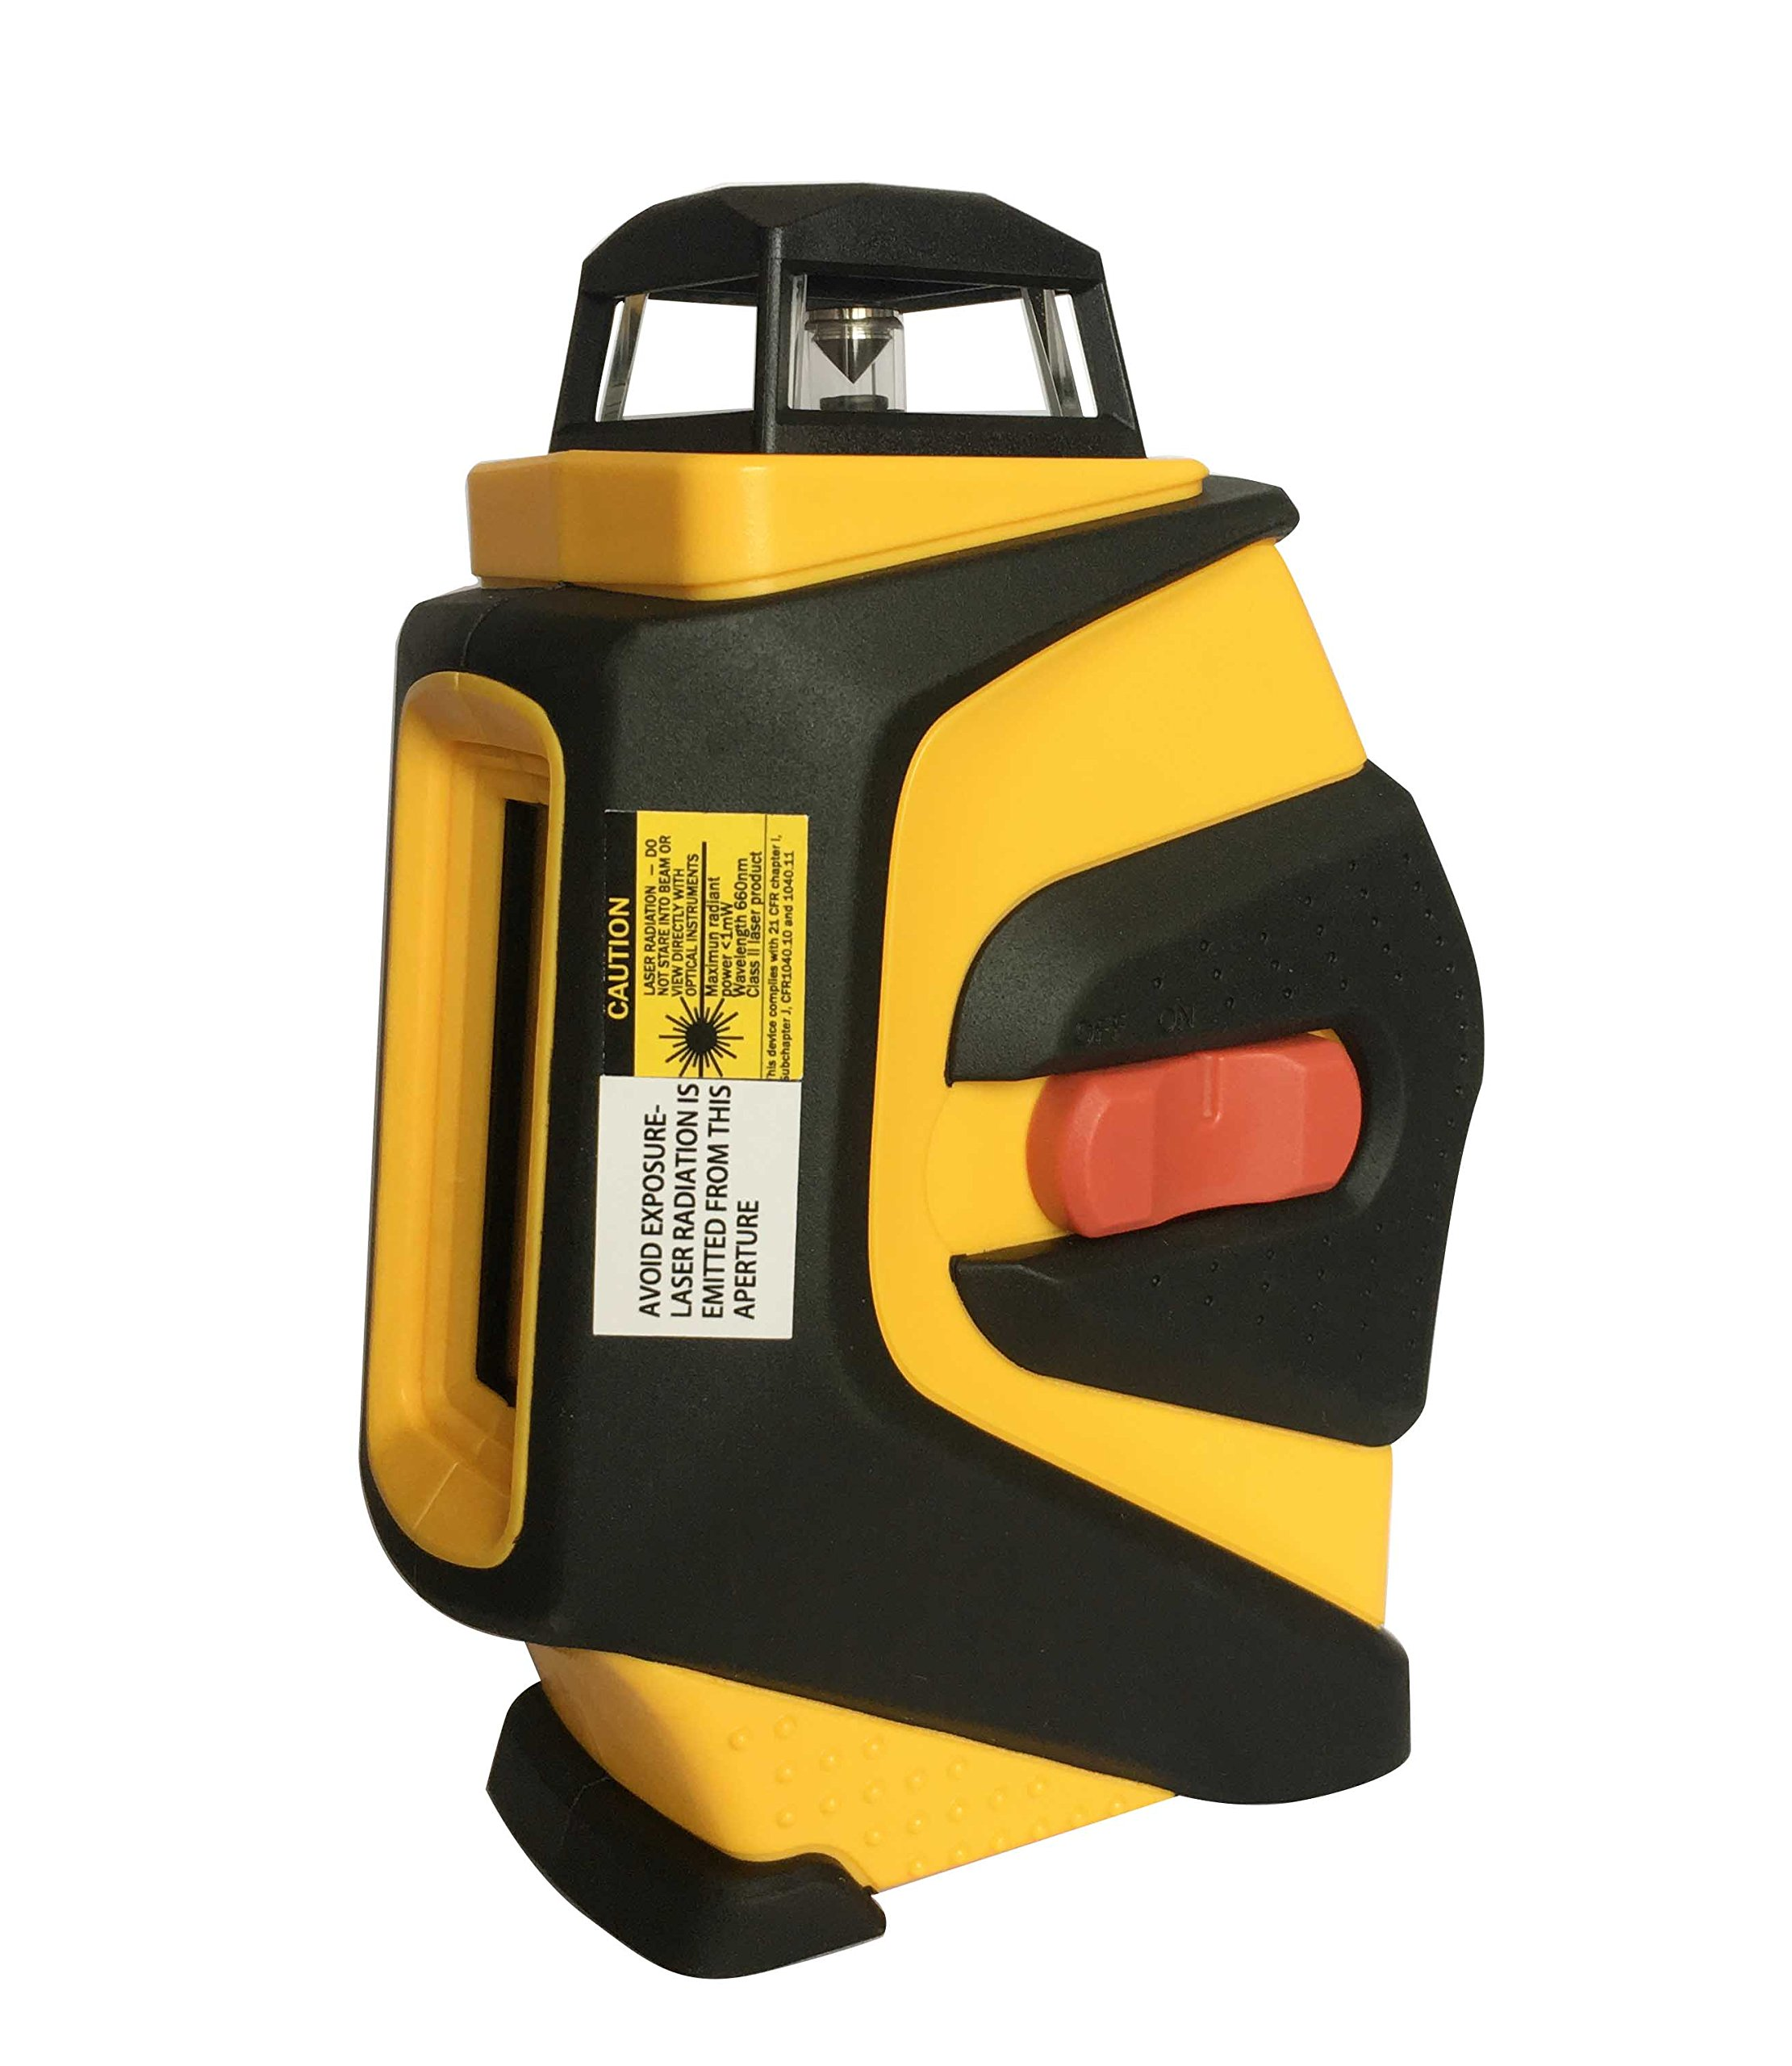 Smatol 360 Degree Self Leveling Laser Level-Vertical and Horizontal Cross Line Laser with Magnetic Mounting Base and Carry Pouch